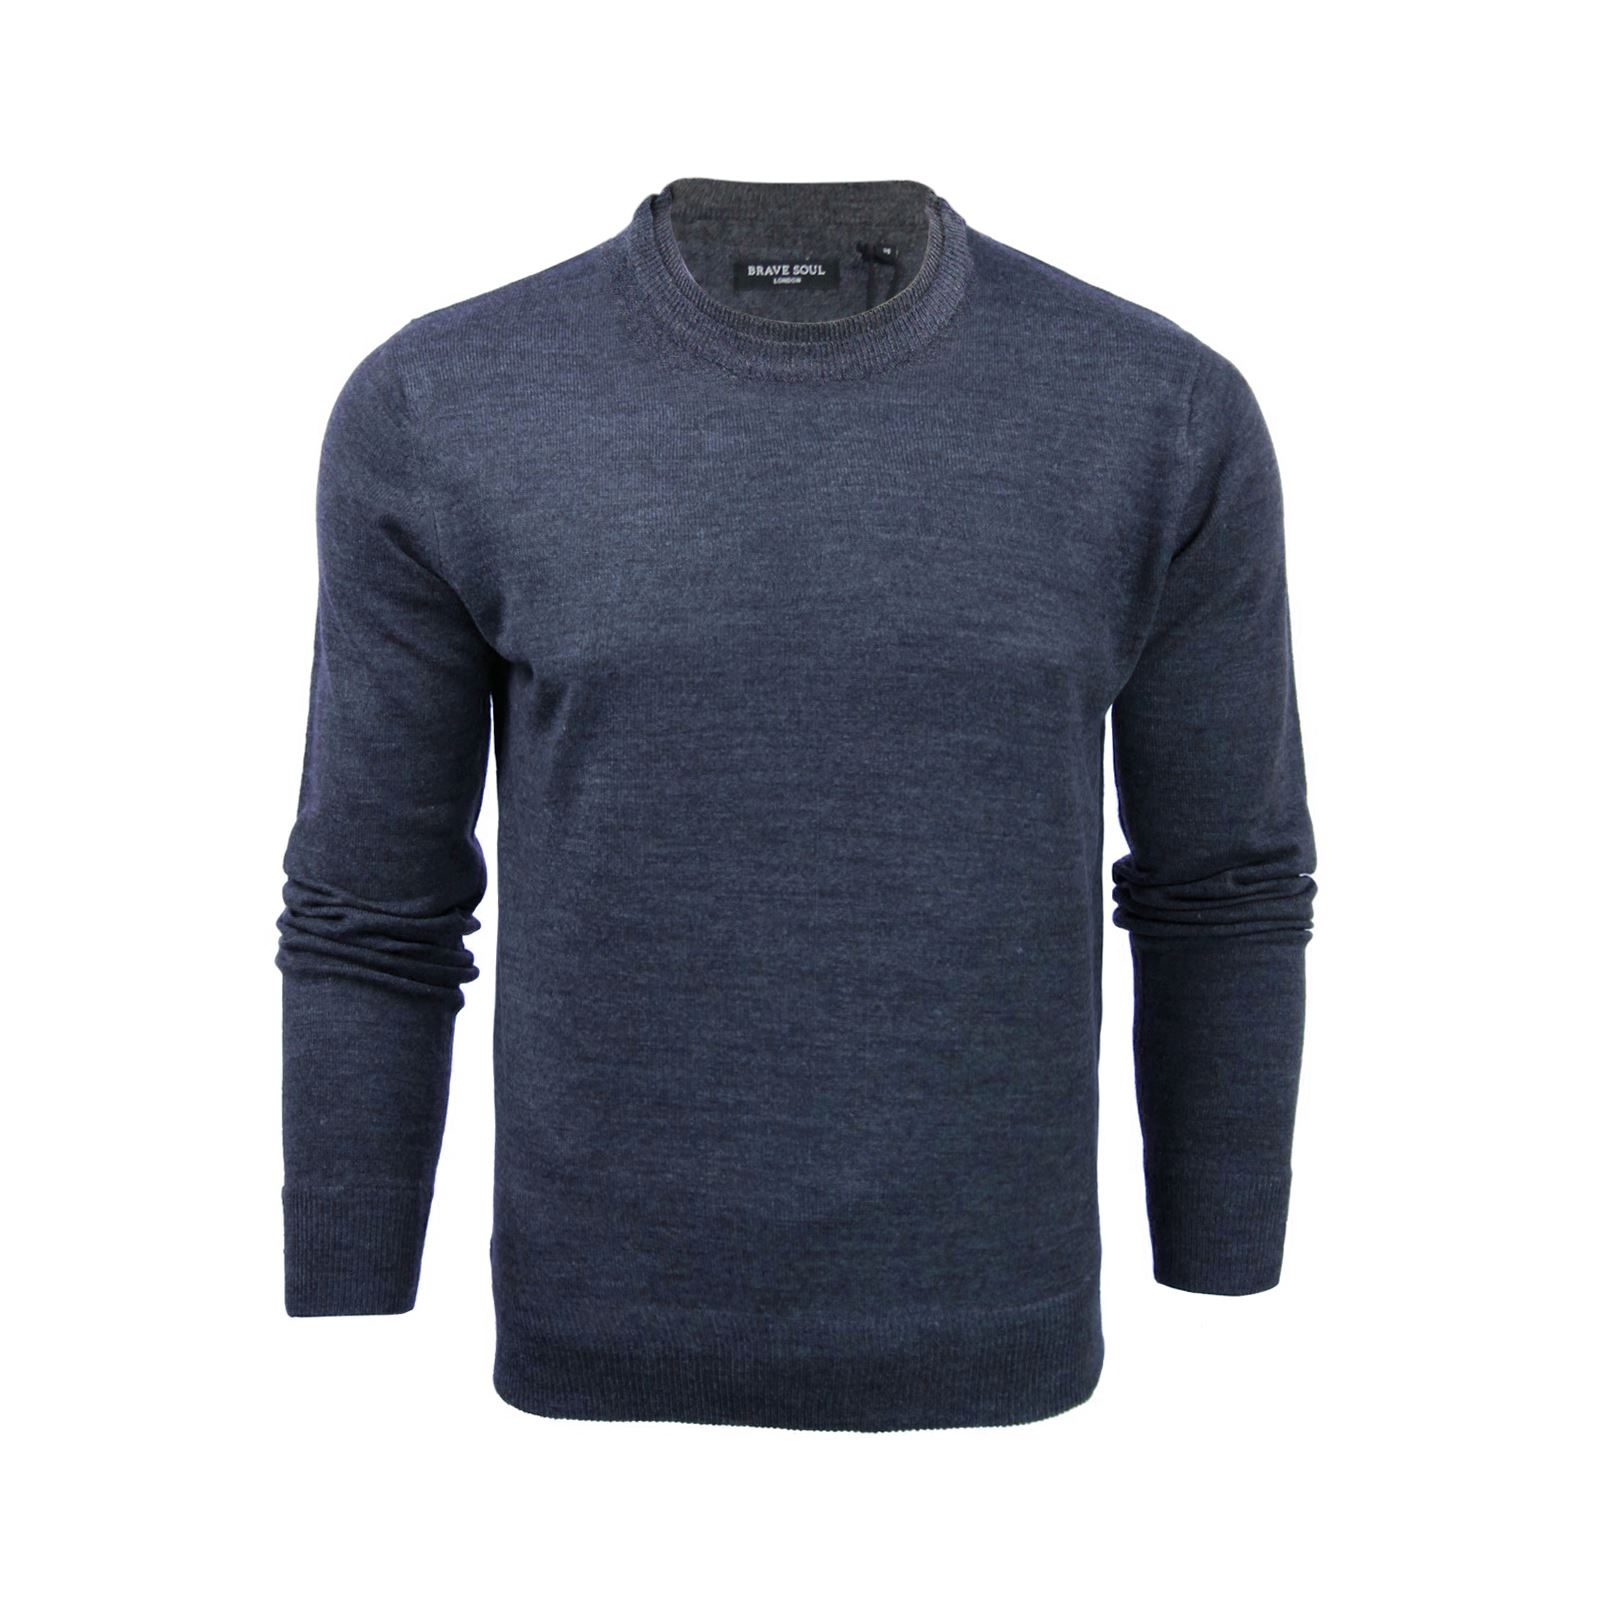 Mens-Jumper-Brave-Soul-Knitted-Sweater-In-Various-Styles thumbnail 4